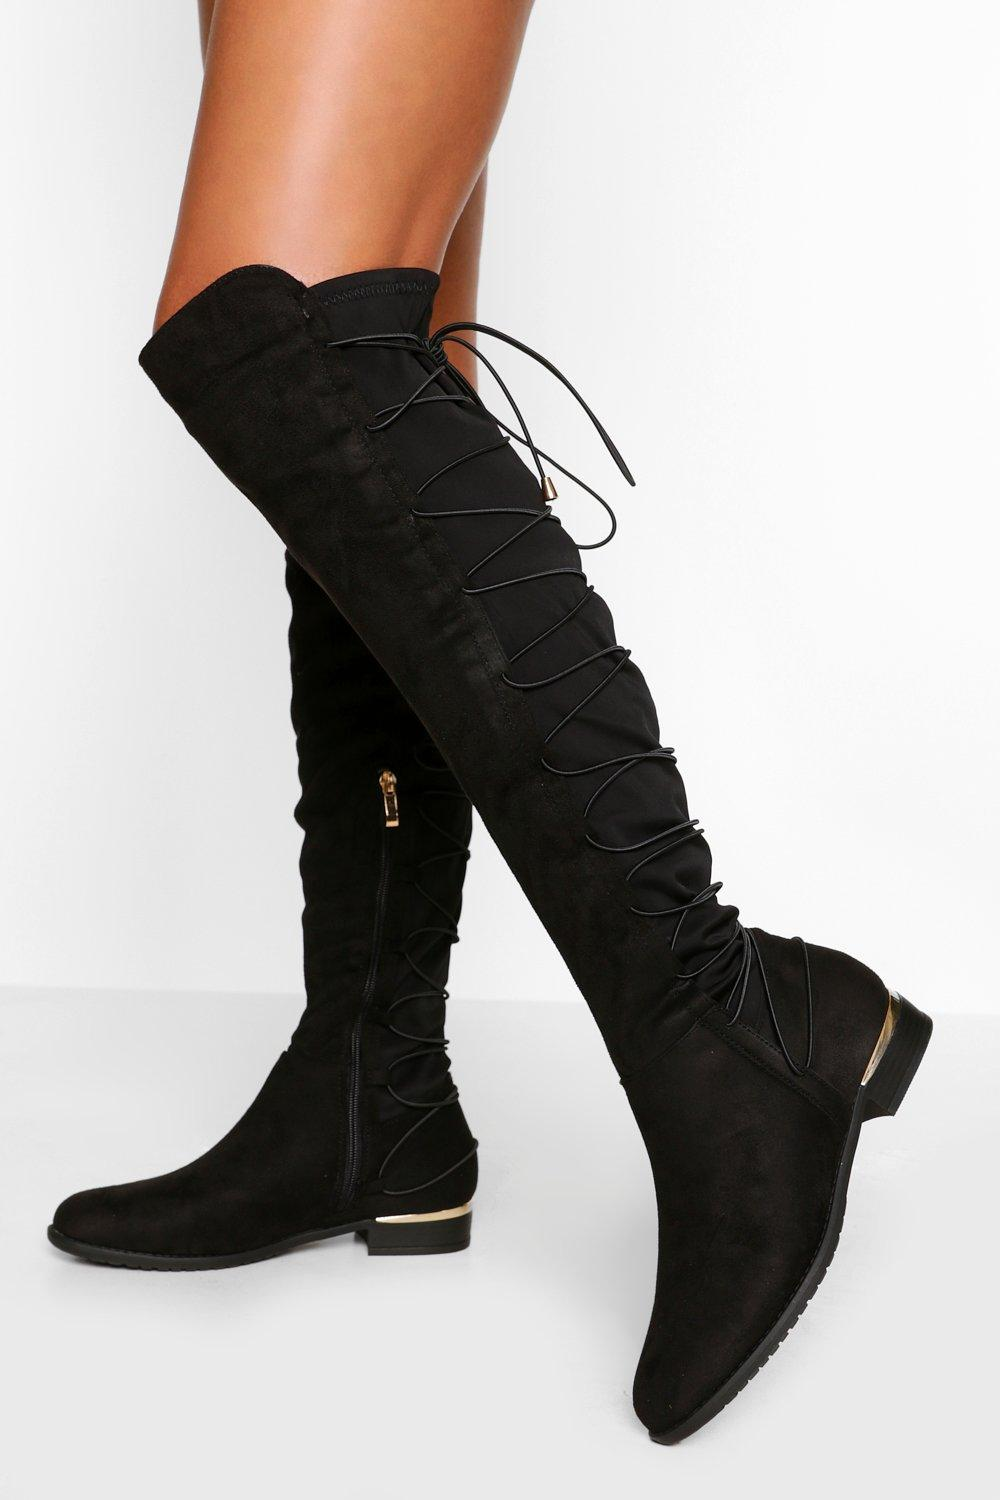 the best attitude 21fdd d8e0d Bungee Lace Back Knee High Boots   Boohoo